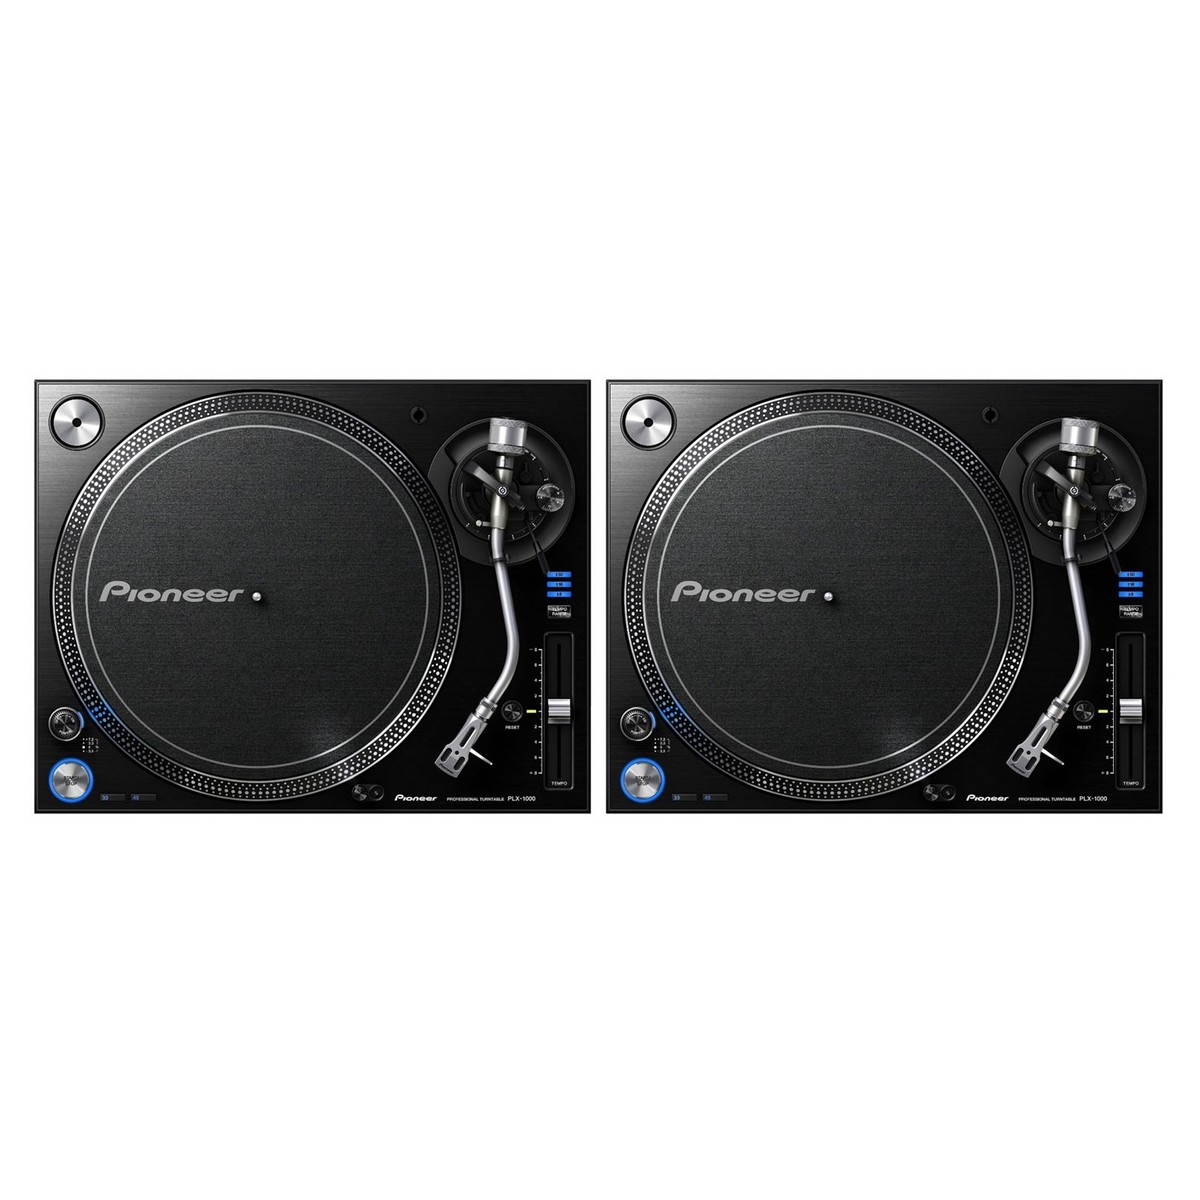 pioneer plx 1000 direct drive turntable pair at gear4music. Black Bedroom Furniture Sets. Home Design Ideas